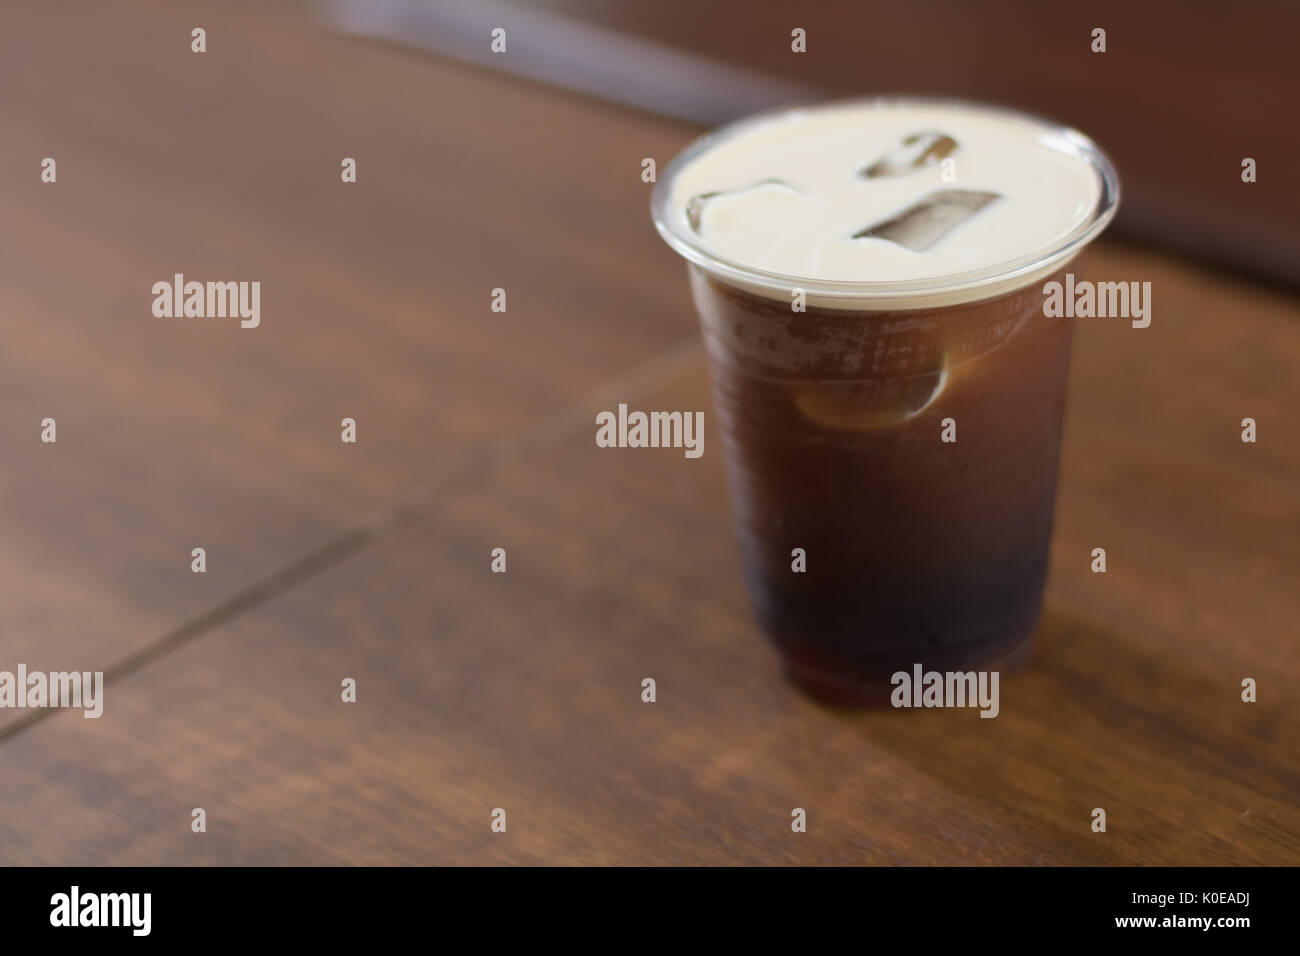 Sparkling Nitro Cold Brew Coffee in plastic take away cup ready to drink - Stock Image